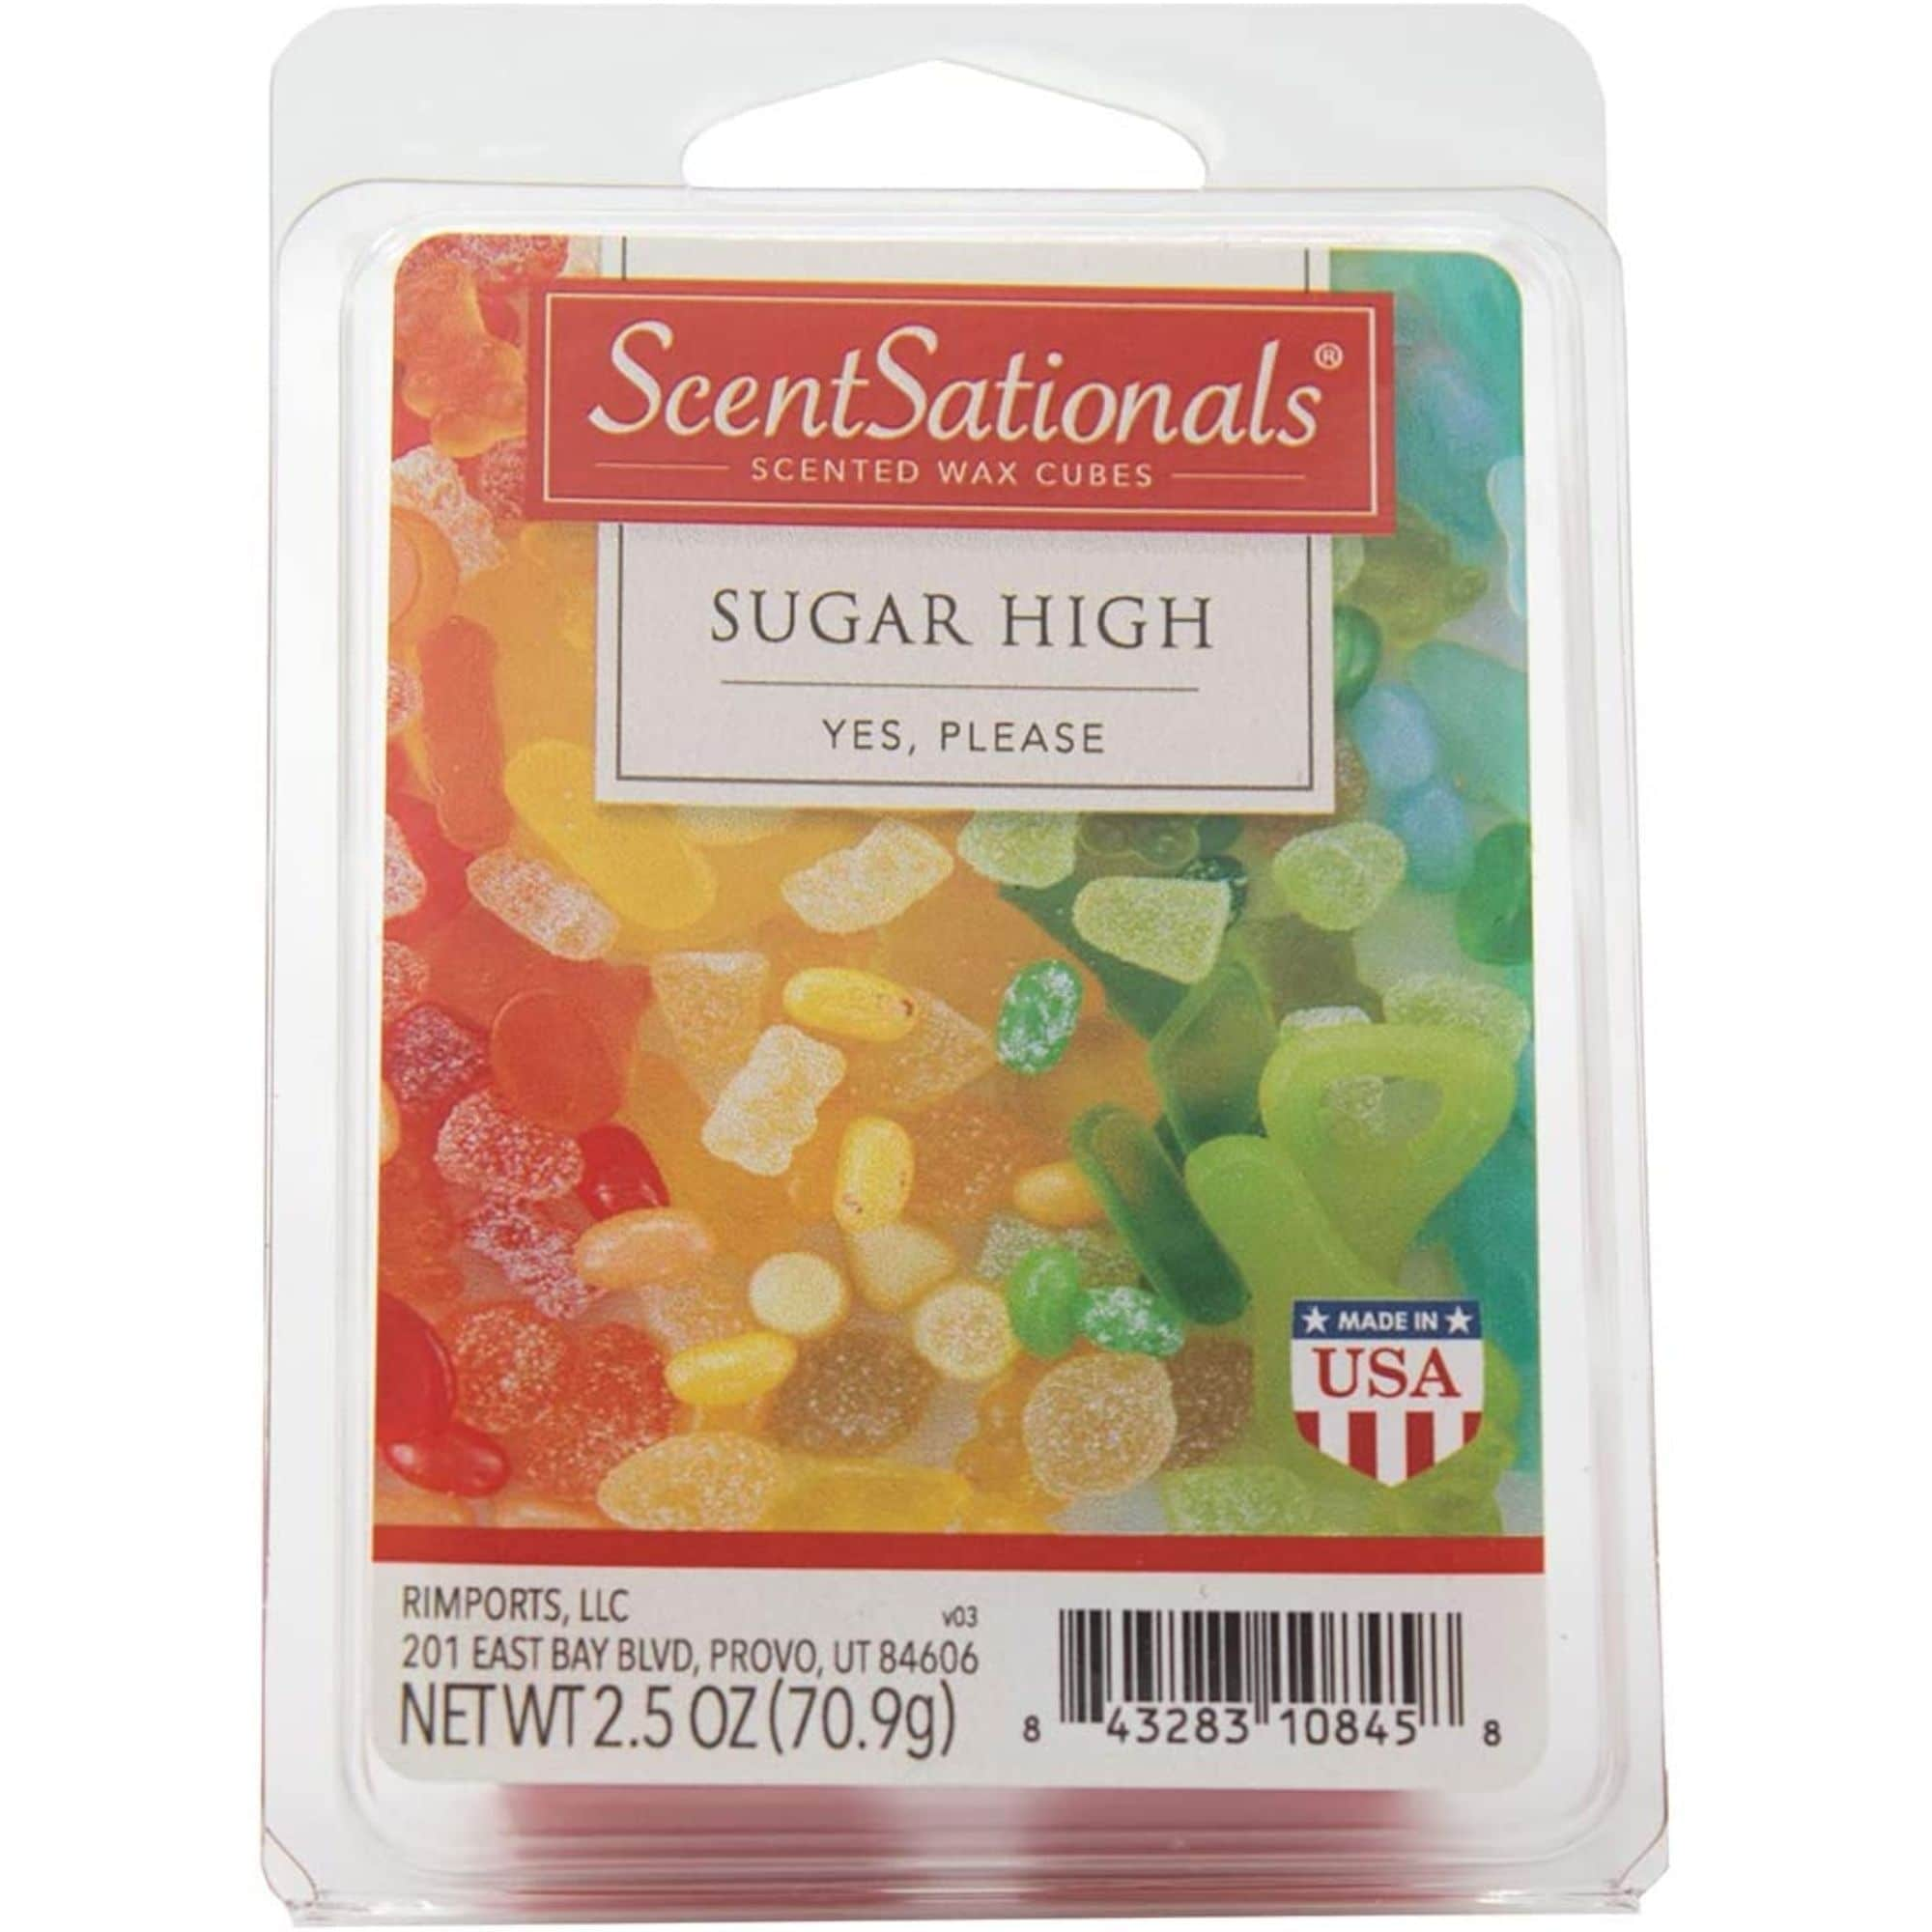 Scentsationals Sugar High 2 5 Oz Fragrant Wax Melts 6 Scented Wax Cubes 4 Pack On Sale Overstock 31141471